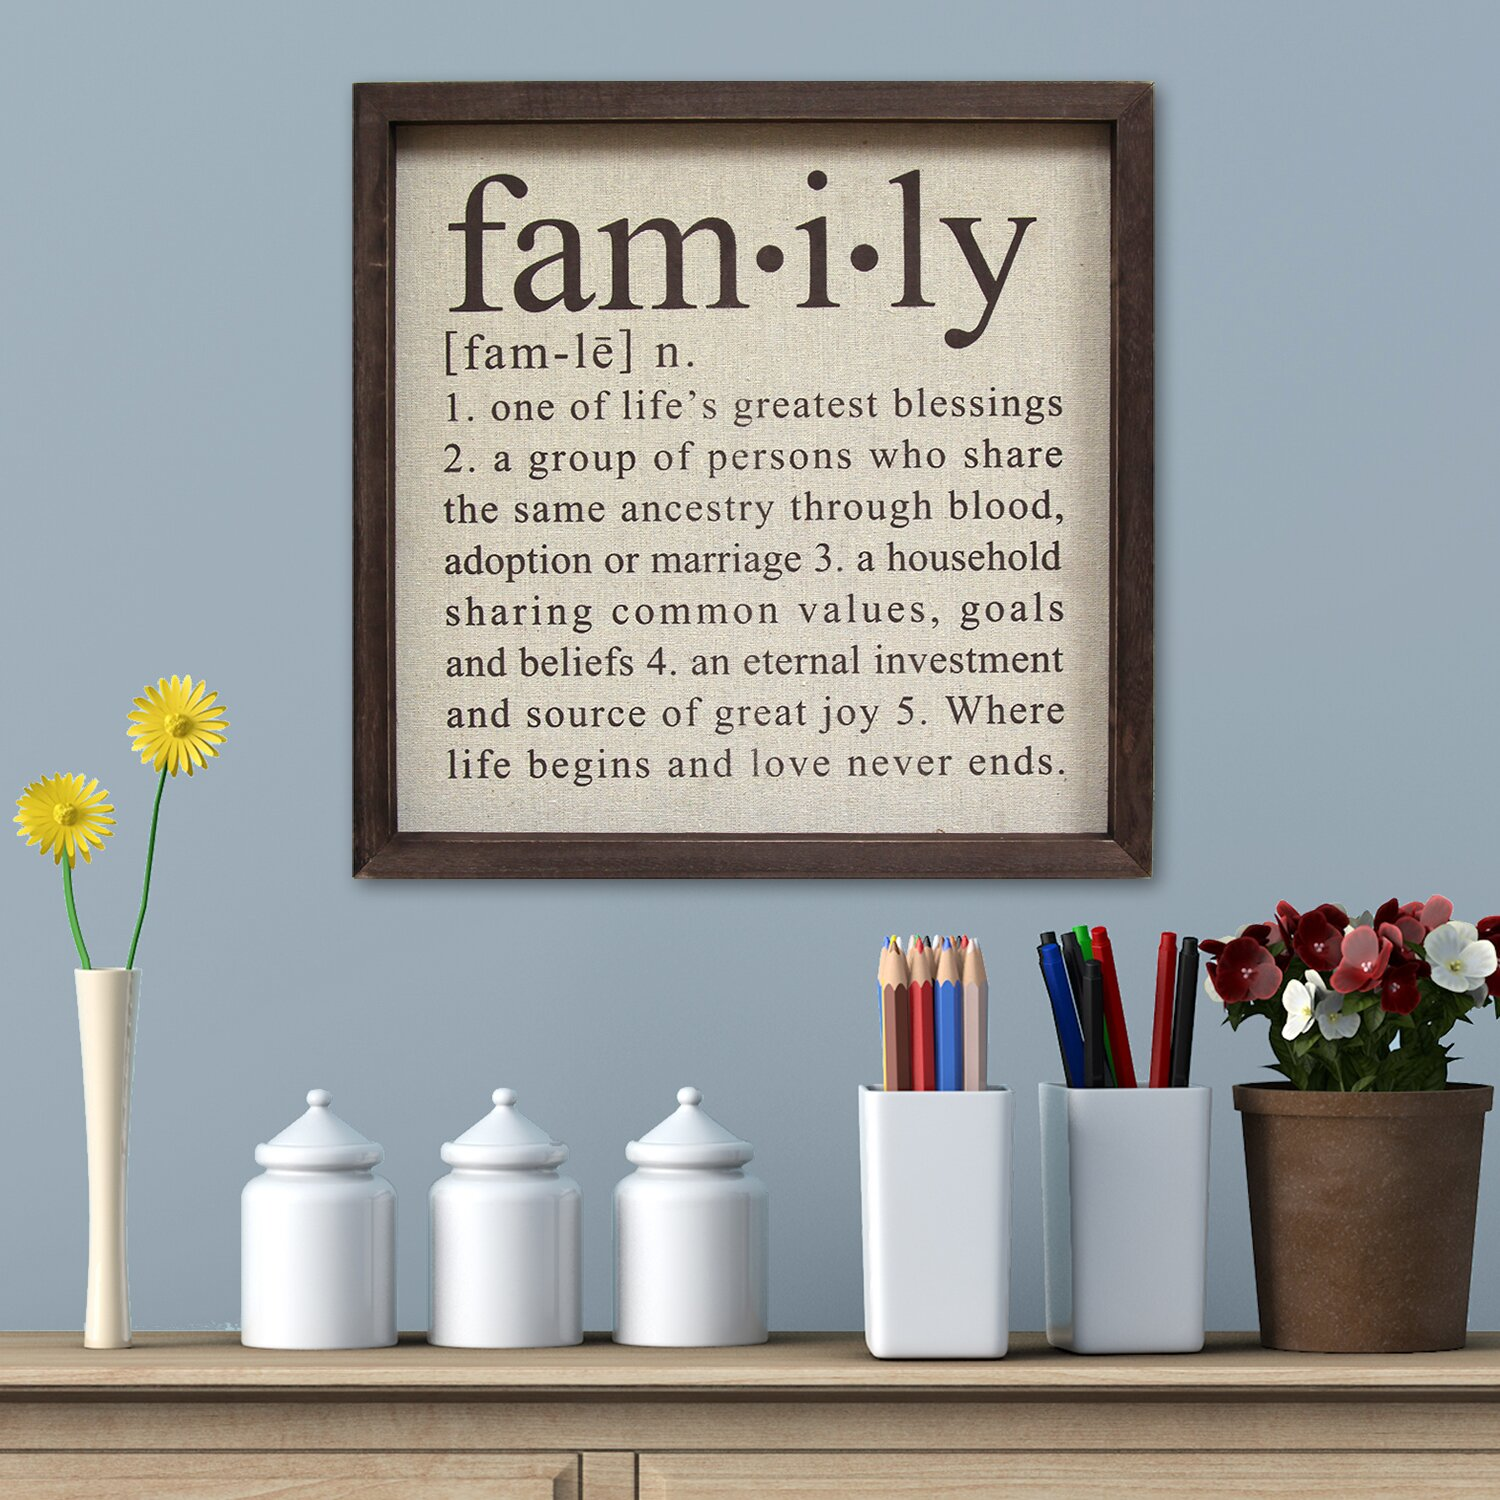 Wall Decoration Definition : Stratton home decor definition of family wall d?cor